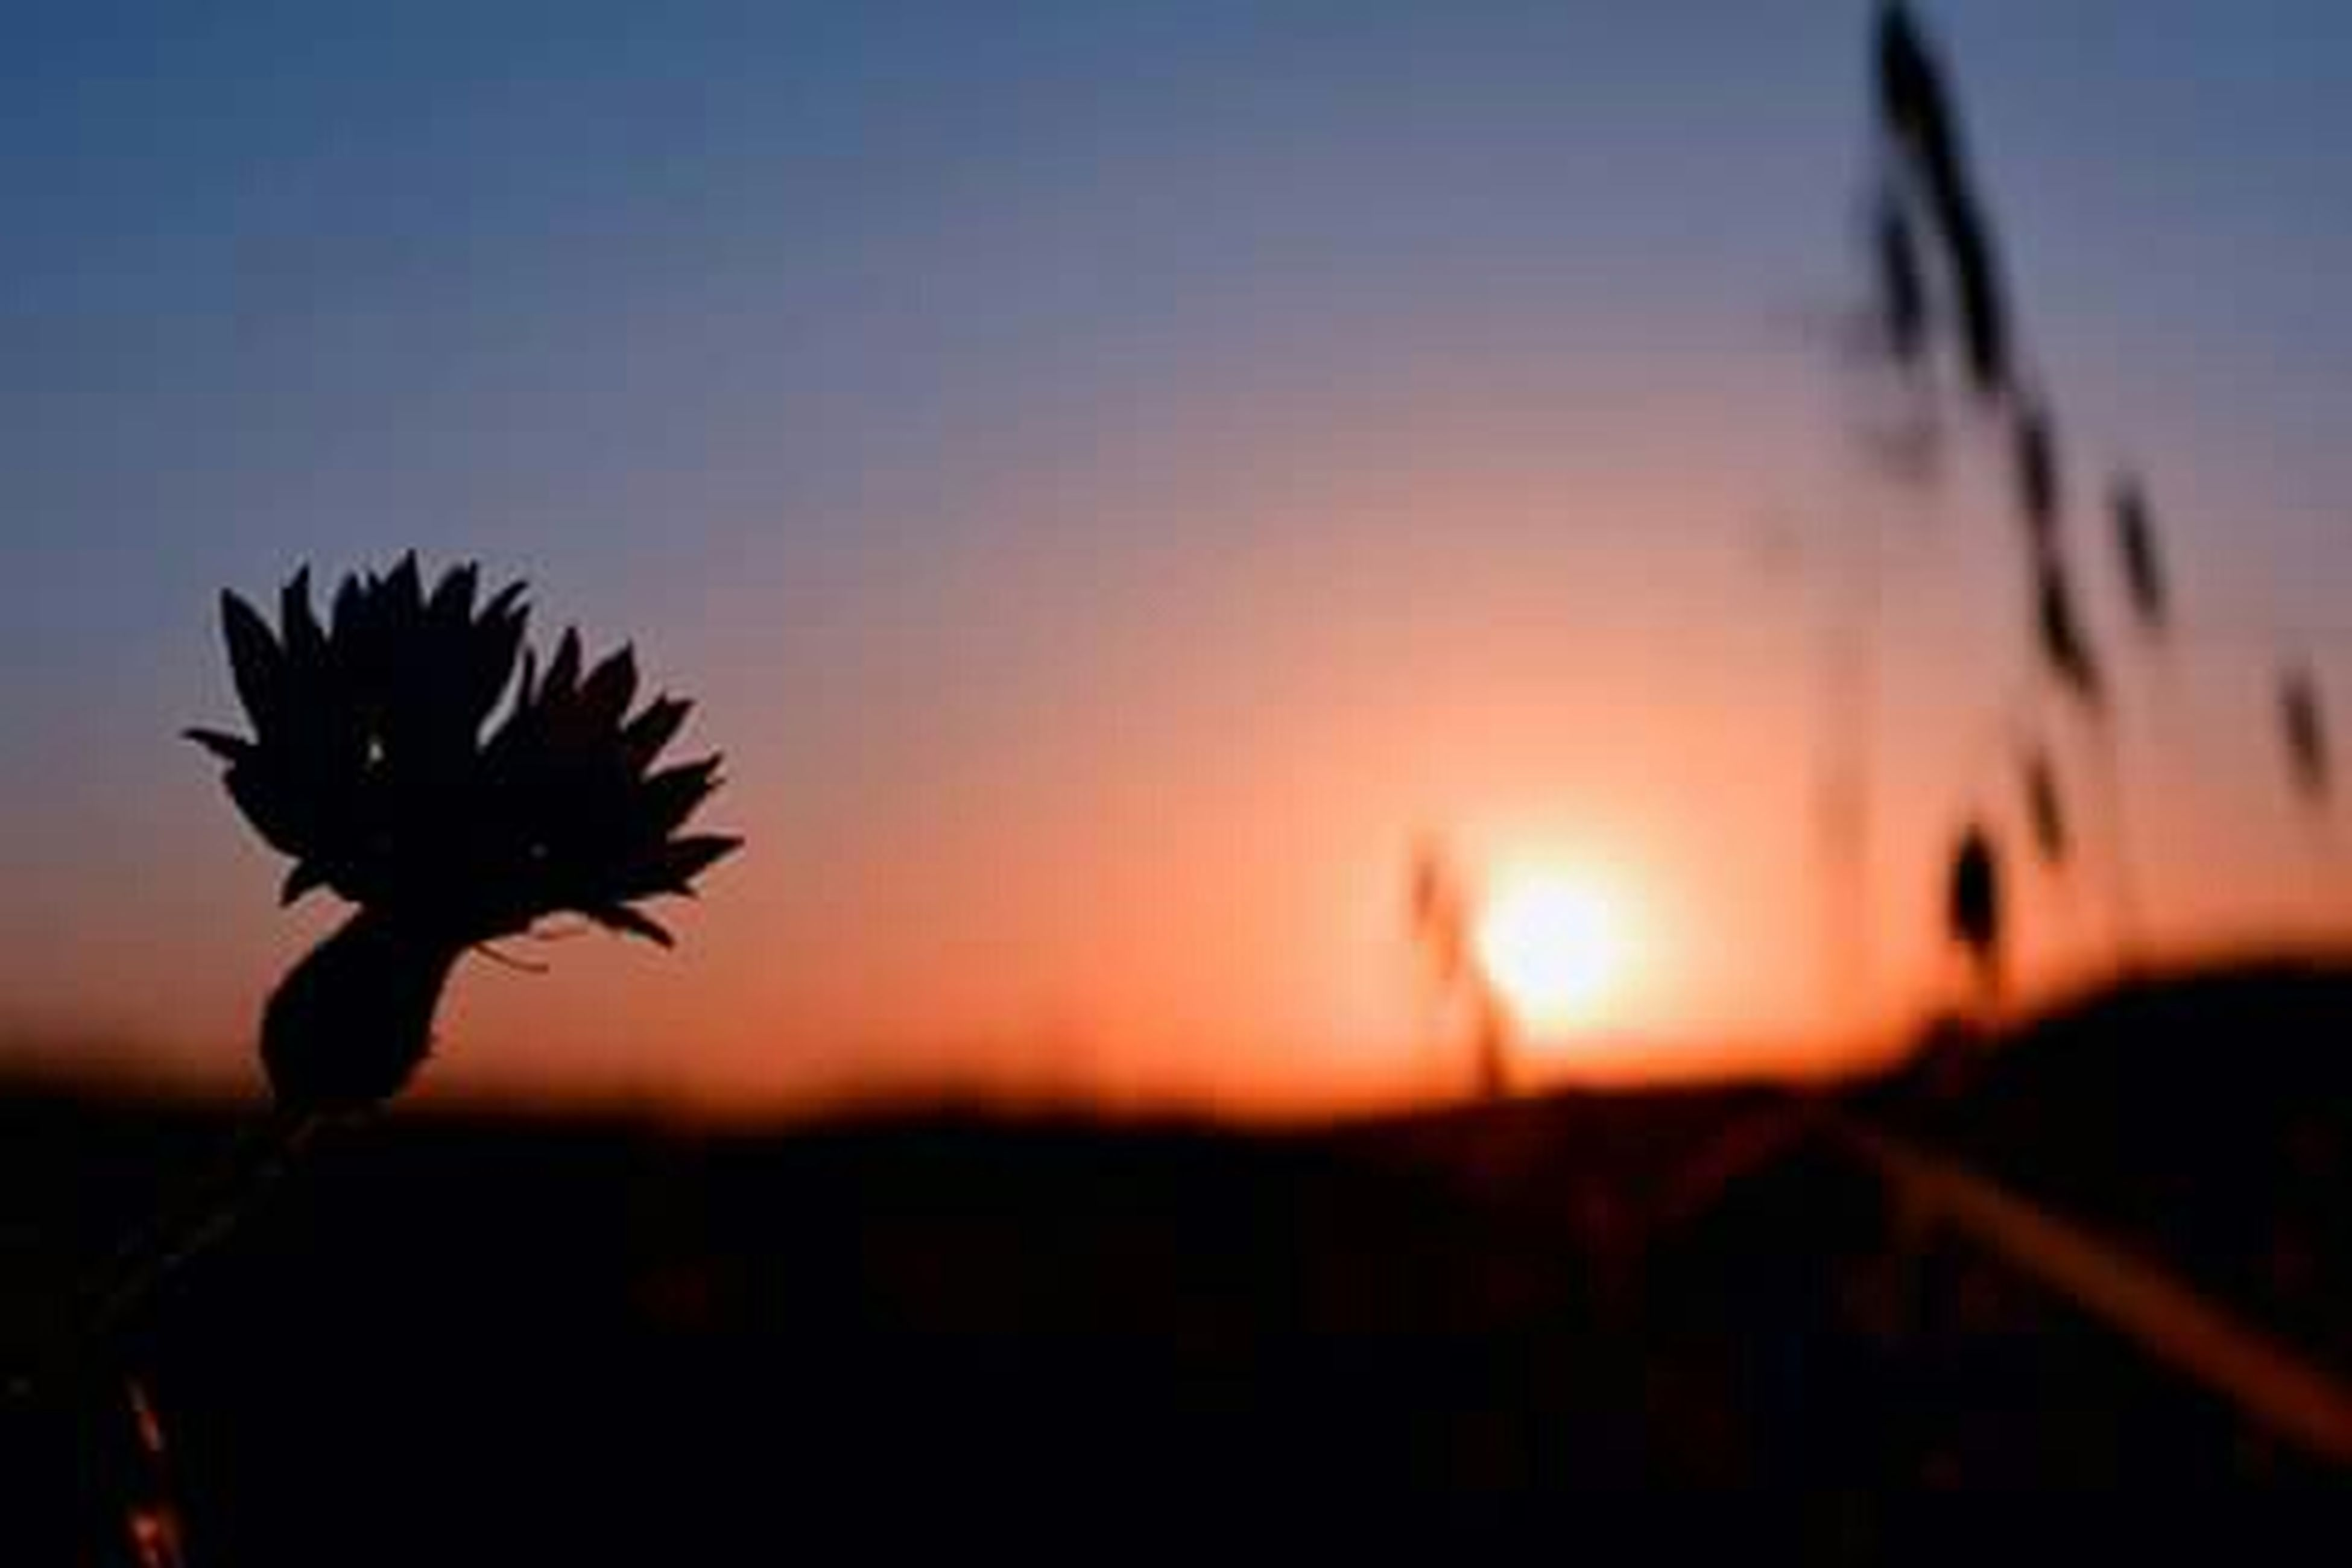 sunset, silhouette, growth, beauty in nature, nature, plant, sun, focus on foreground, sky, tranquility, orange color, stem, scenics, close-up, field, tranquil scene, selective focus, clear sky, sunlight, outdoors